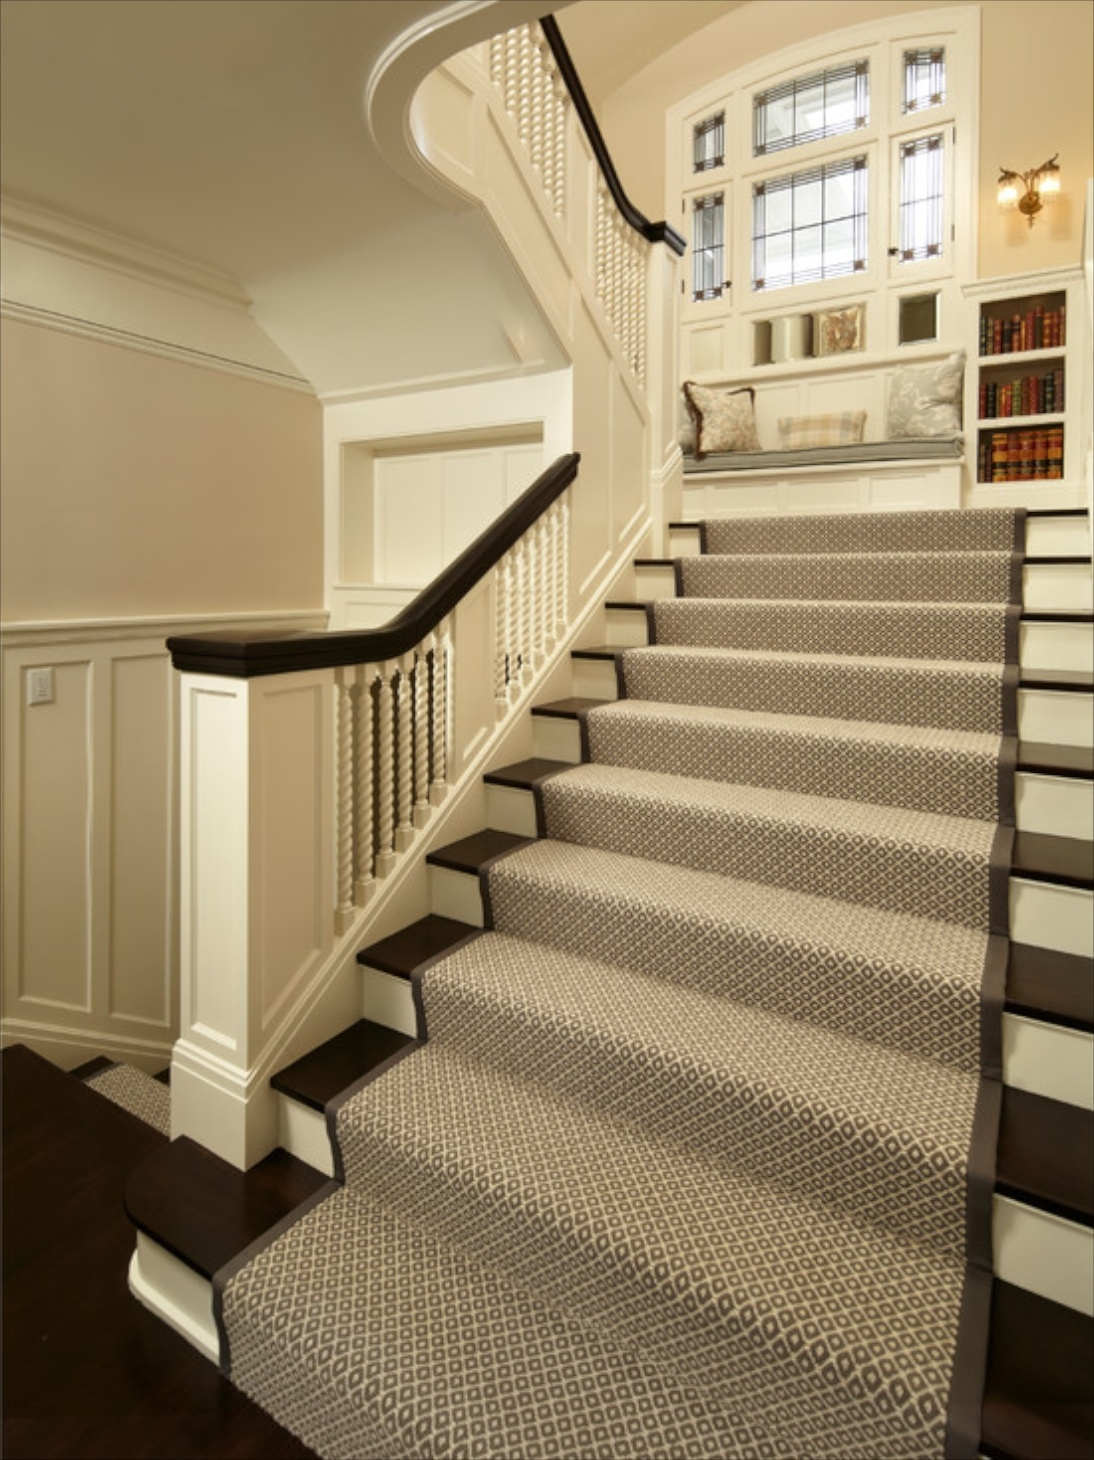 Attirant Inspiration About Carpet Stair Strips Carpet Stair Slippery Carpet Stair  Steps For Removable Carpet Stair Treads